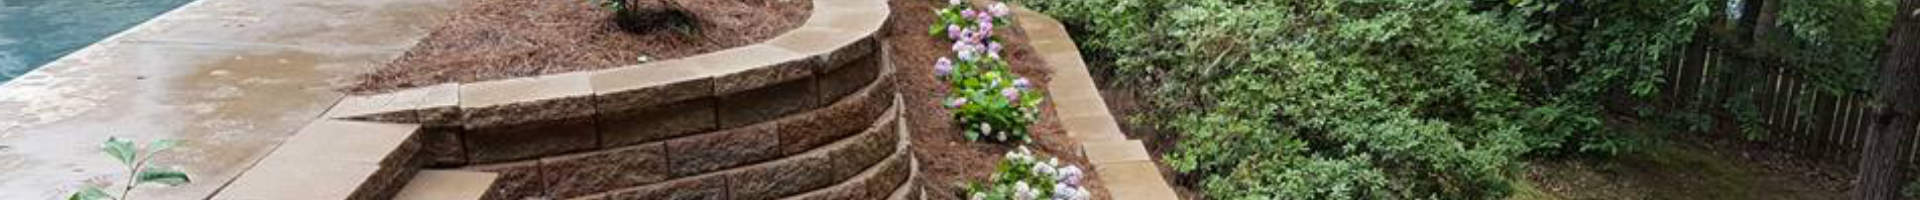 retaining walls with steps to the garden